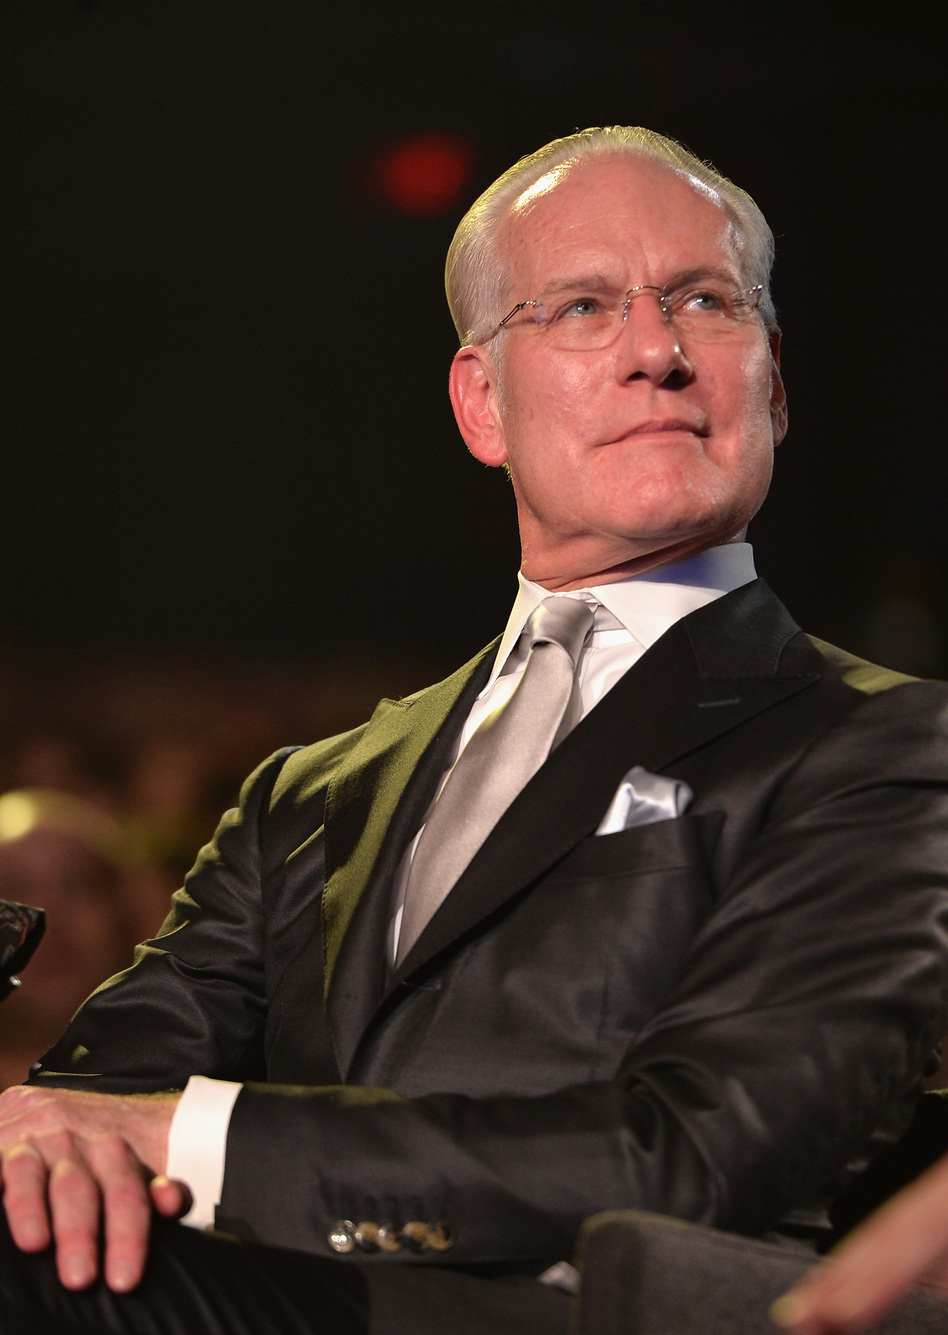 Tim Gunn On And Off The Runway Life Is A Big Collaboration Wbur News